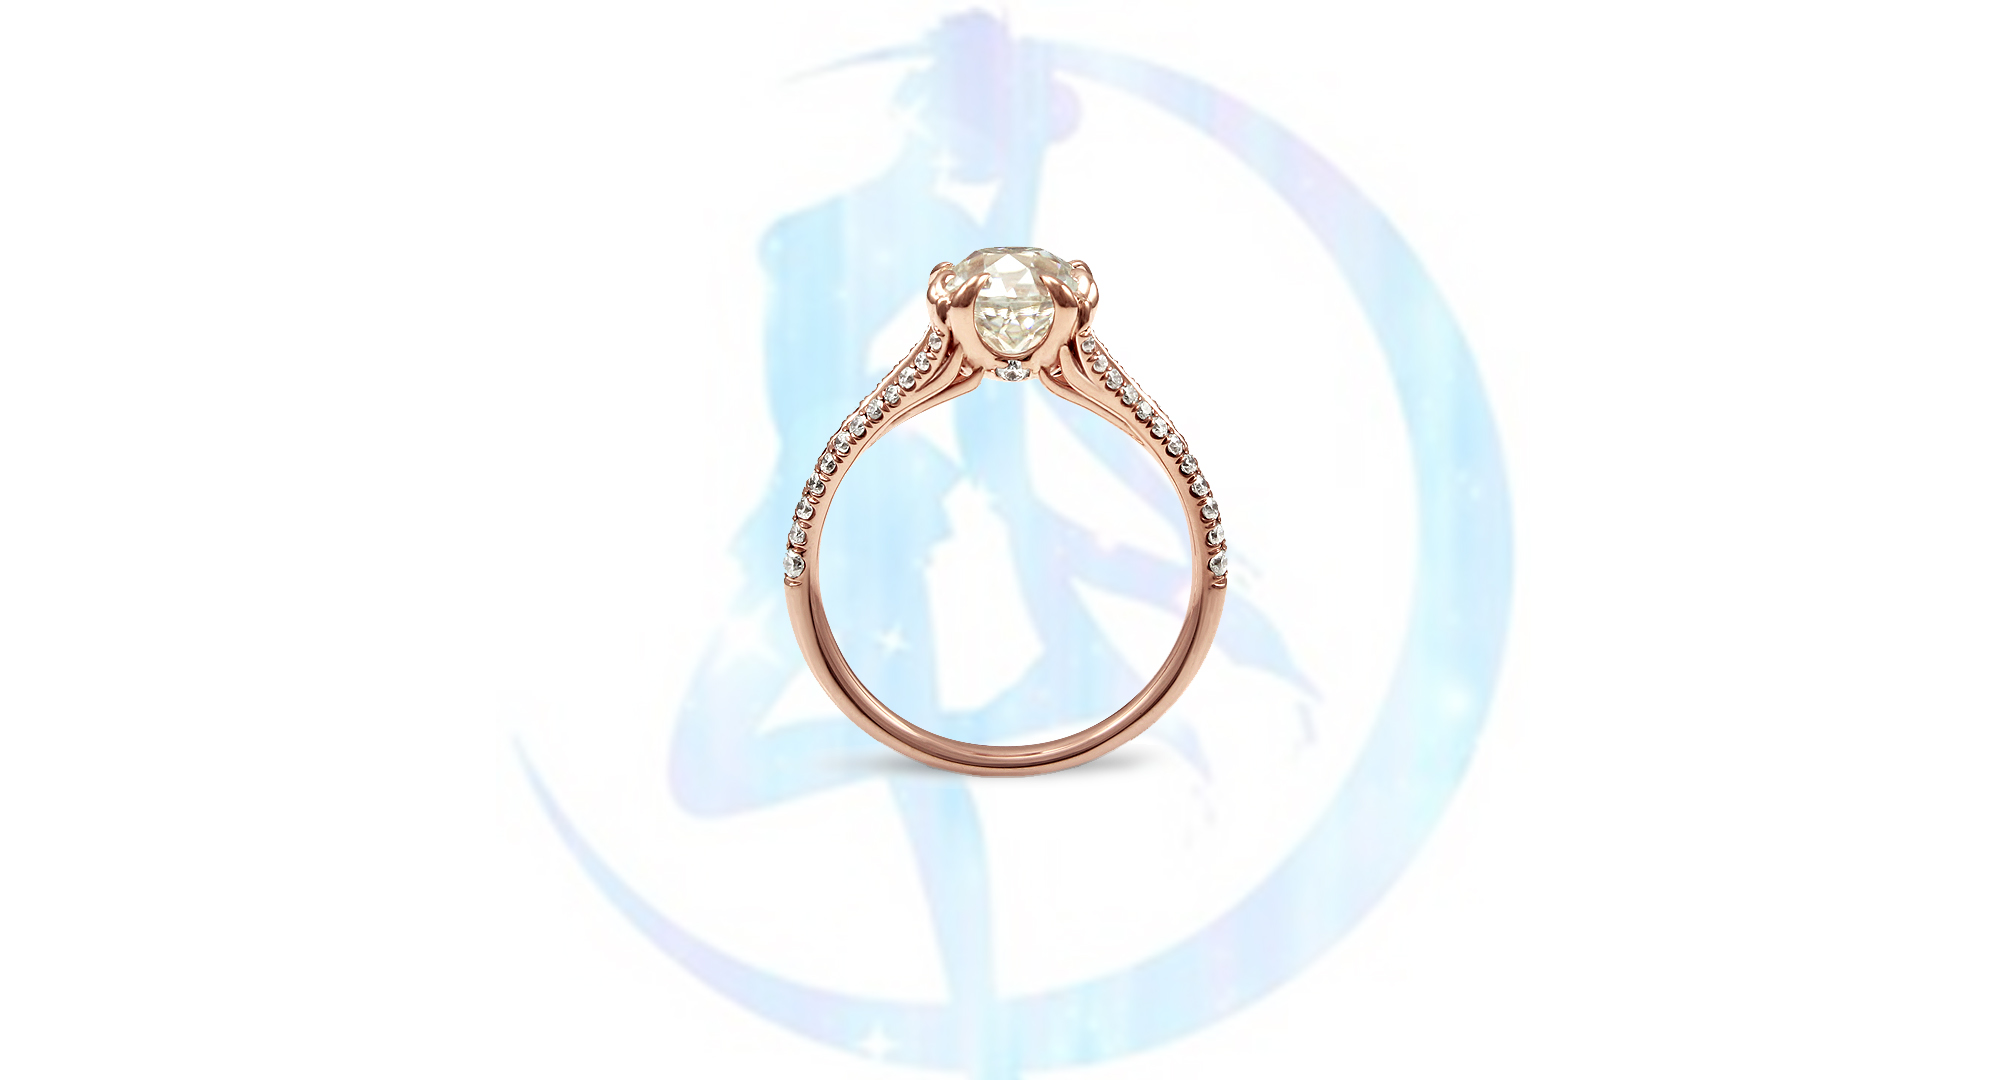 sailor-moon-ring-featured-image.jpg